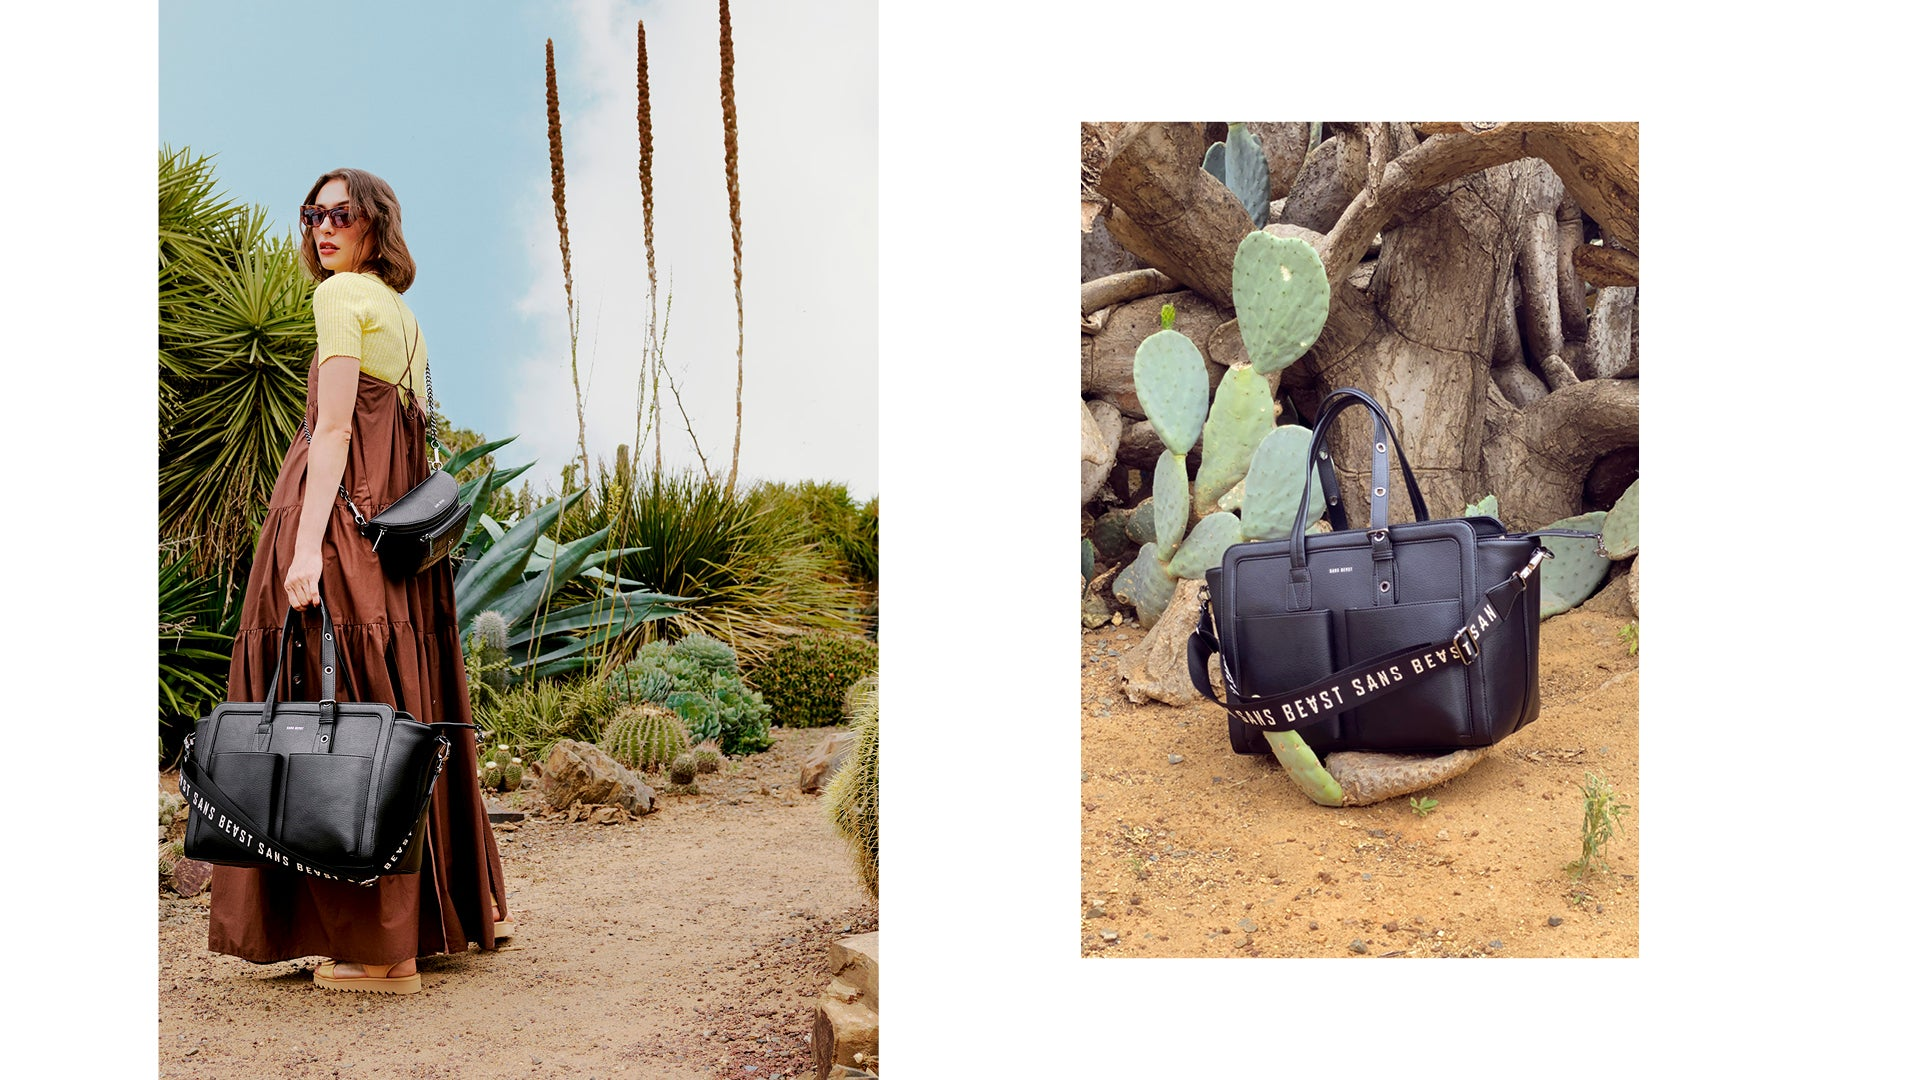 Two images side by side: Juliette holding the Daytripper in Noir + a still life of the Daytripper at Cactus Country.